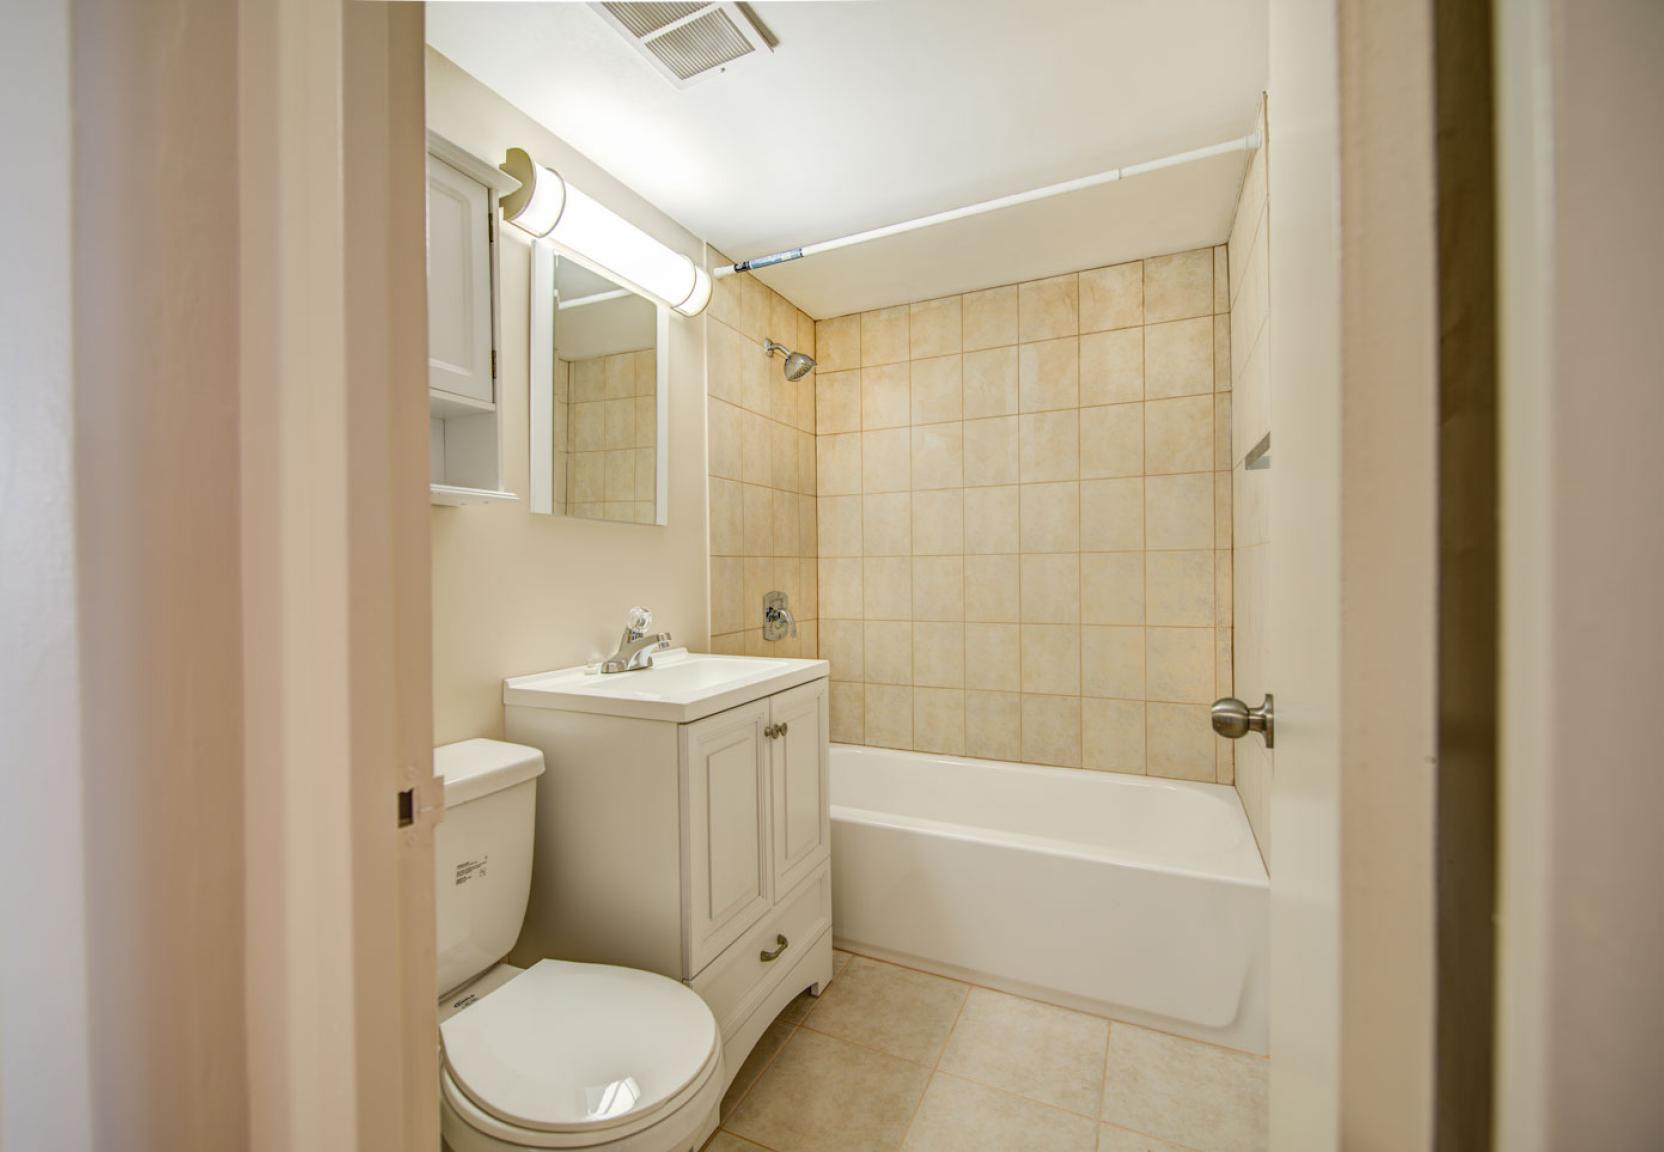 1 bedroom Apartments for rent in Toronto at Holly Tower - Photo 19 - RentersPages – L399824